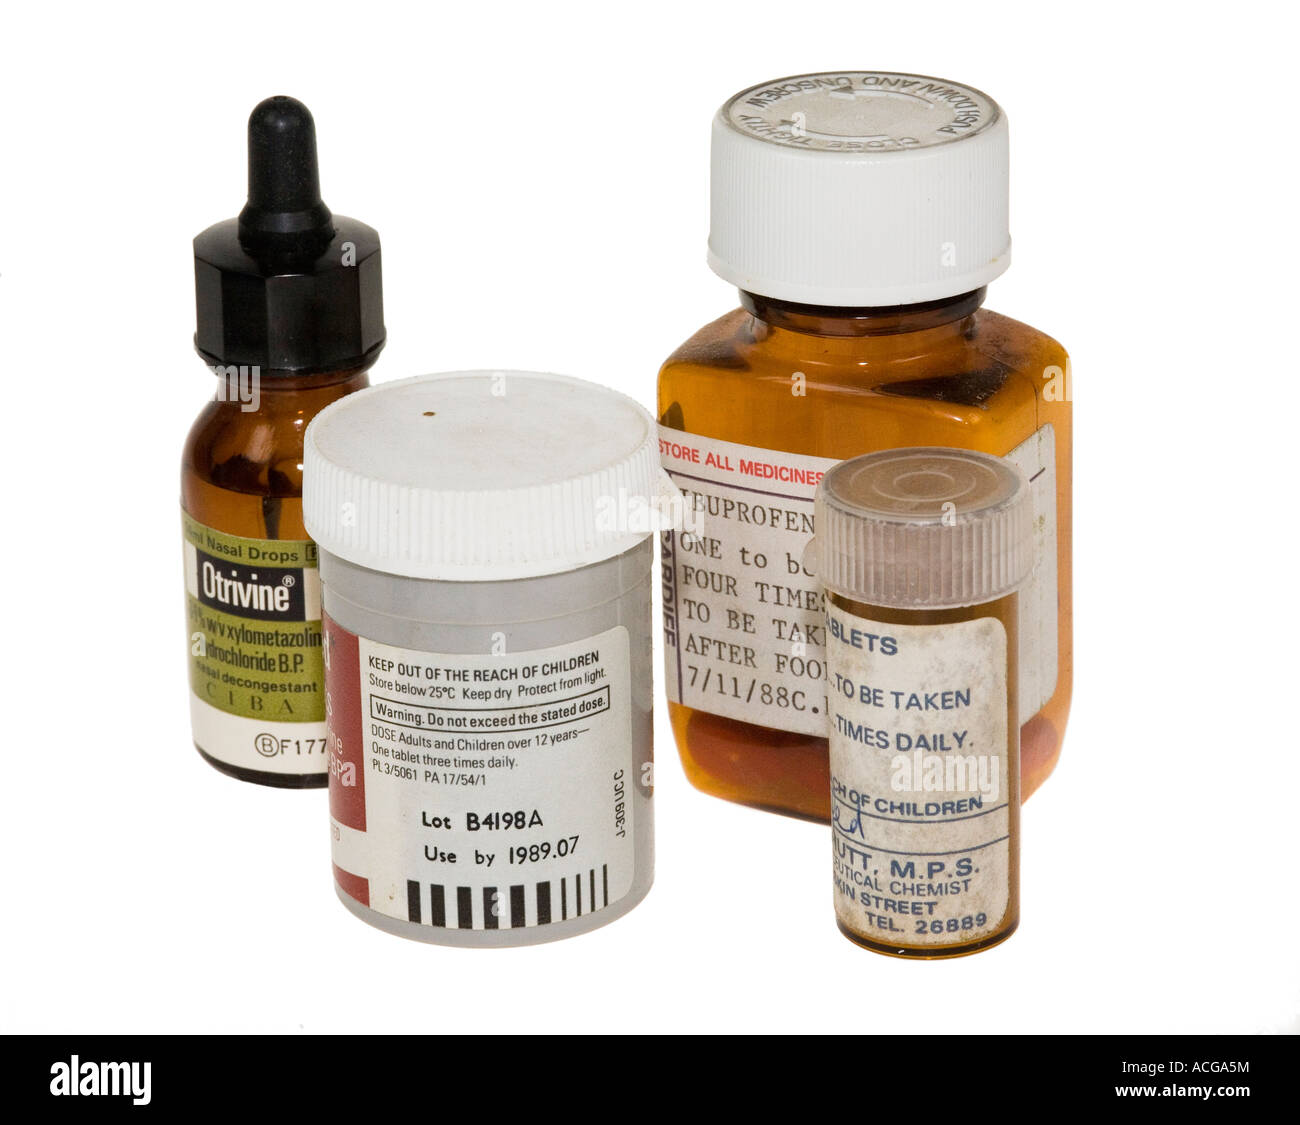 Old outdated medical pills and drops for disposal UK - Stock Image